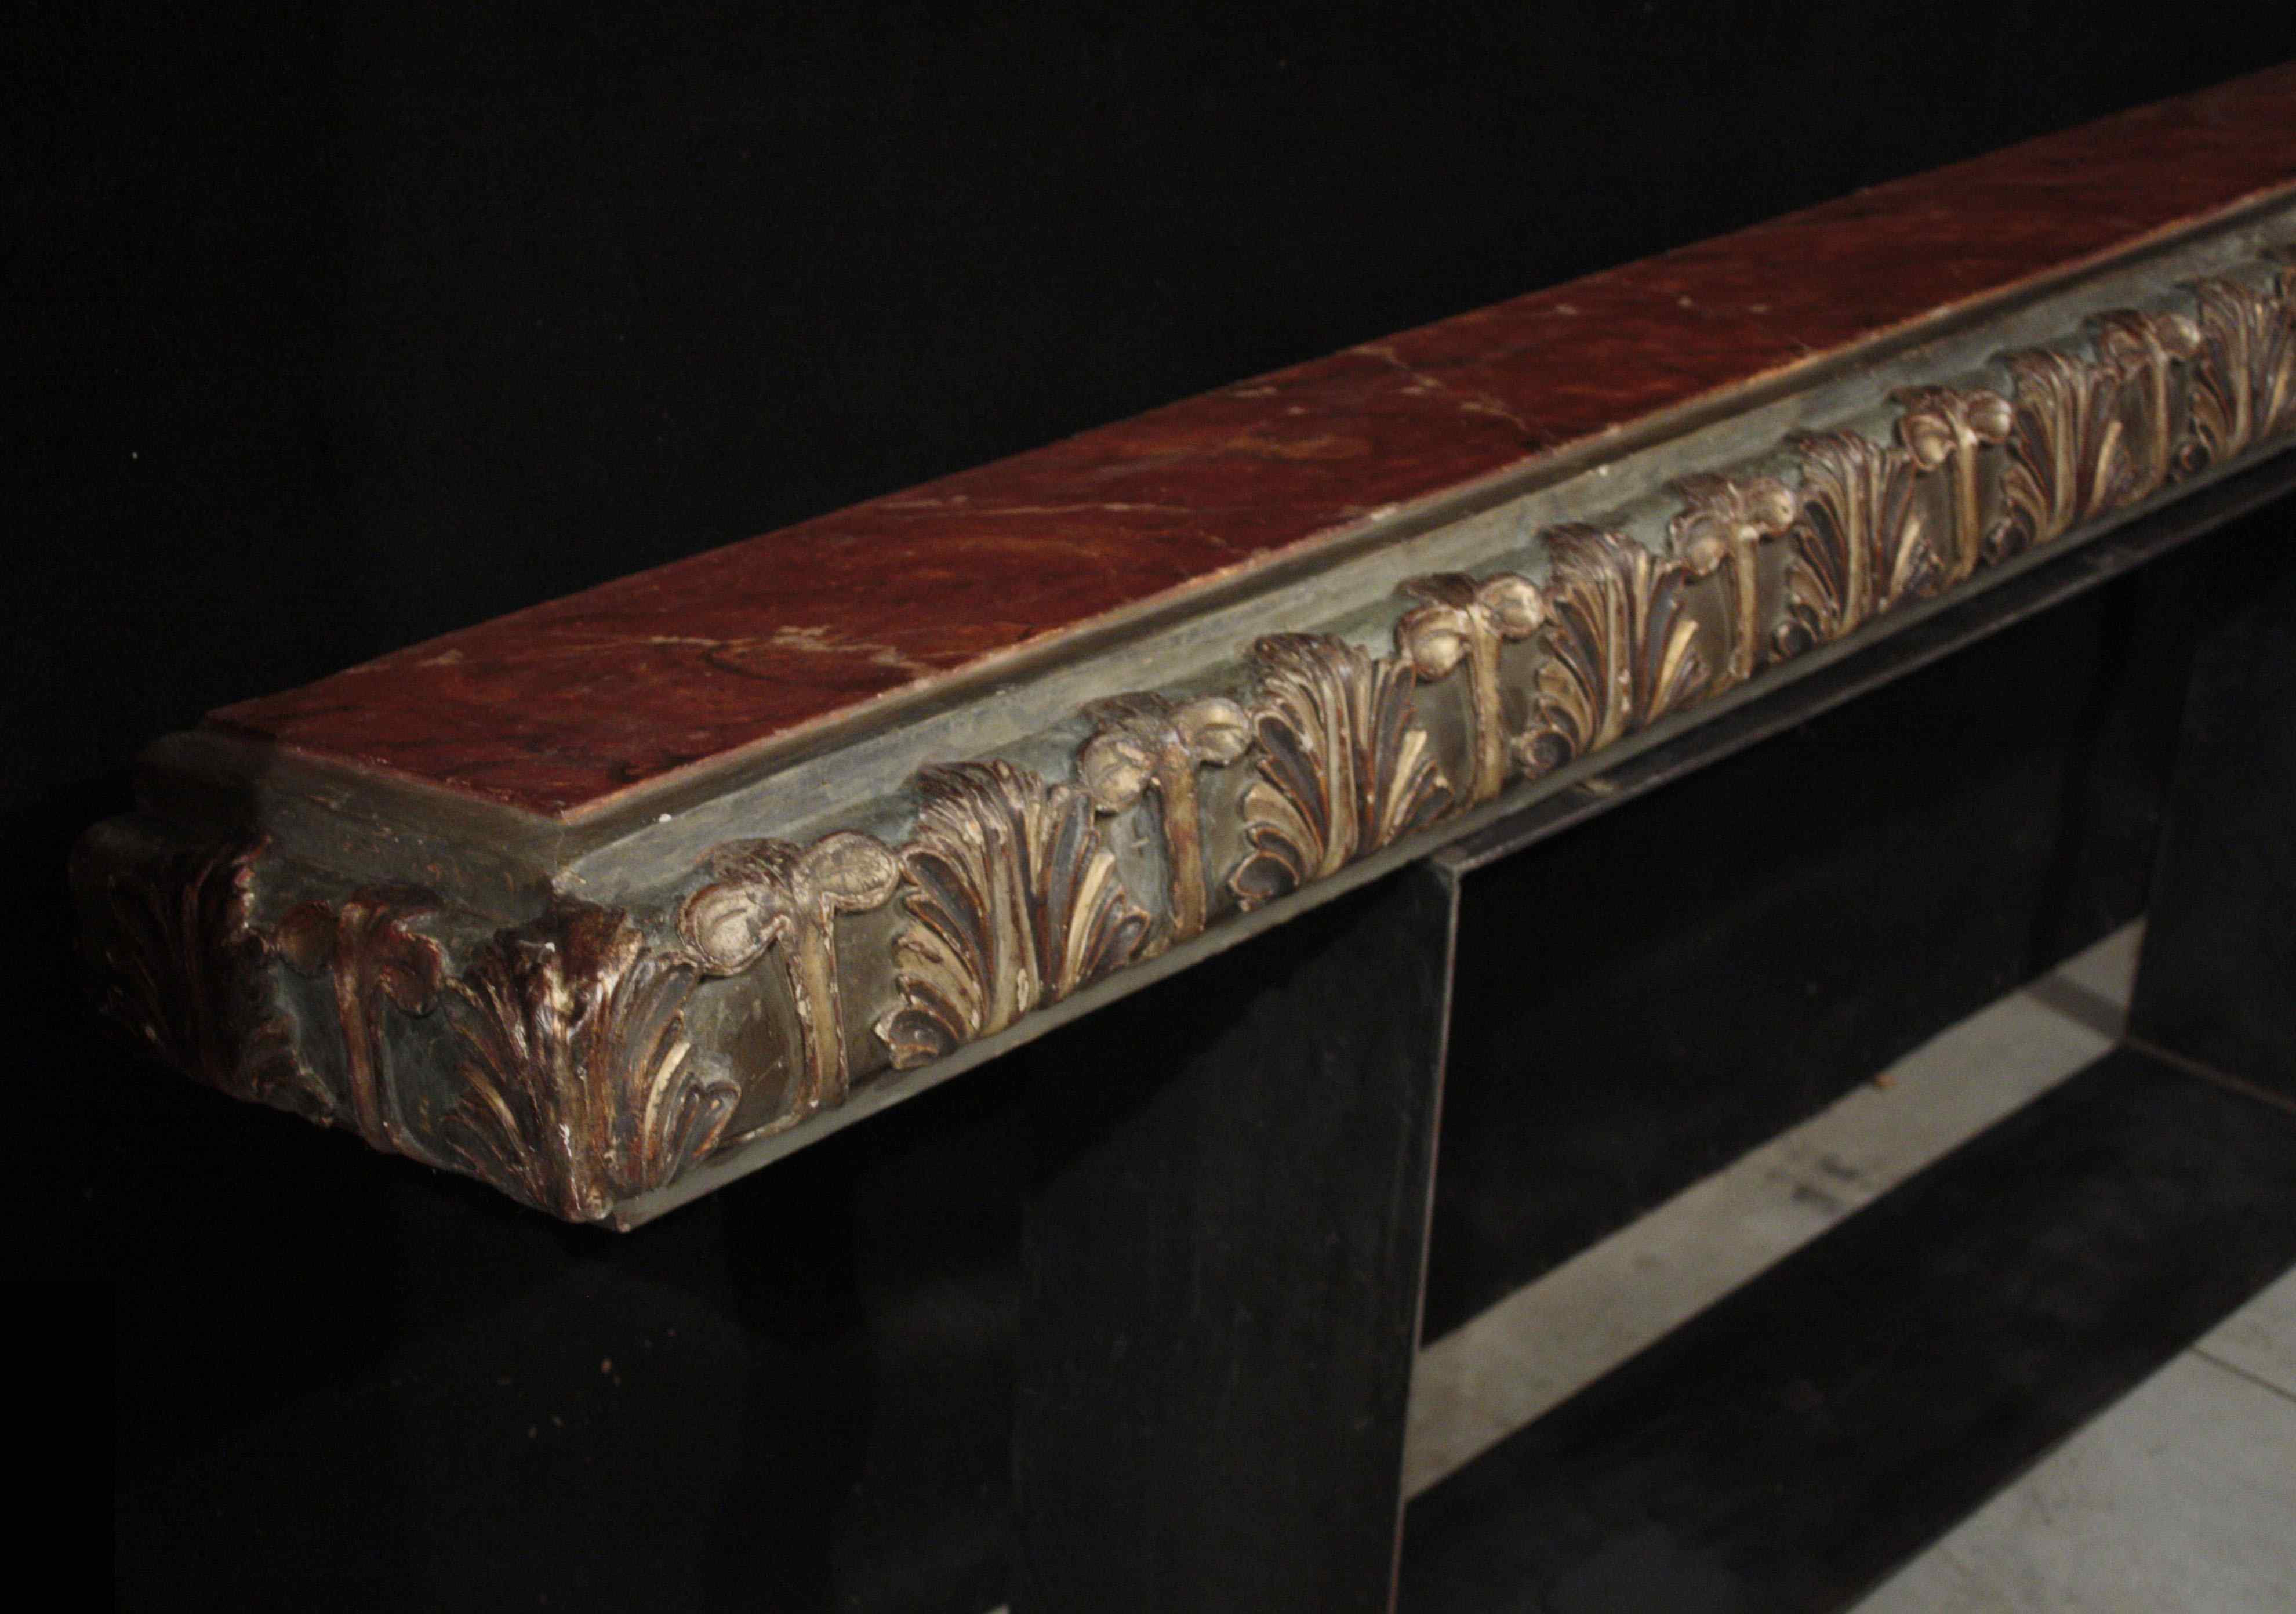 Lacquered shelf with golden friezes